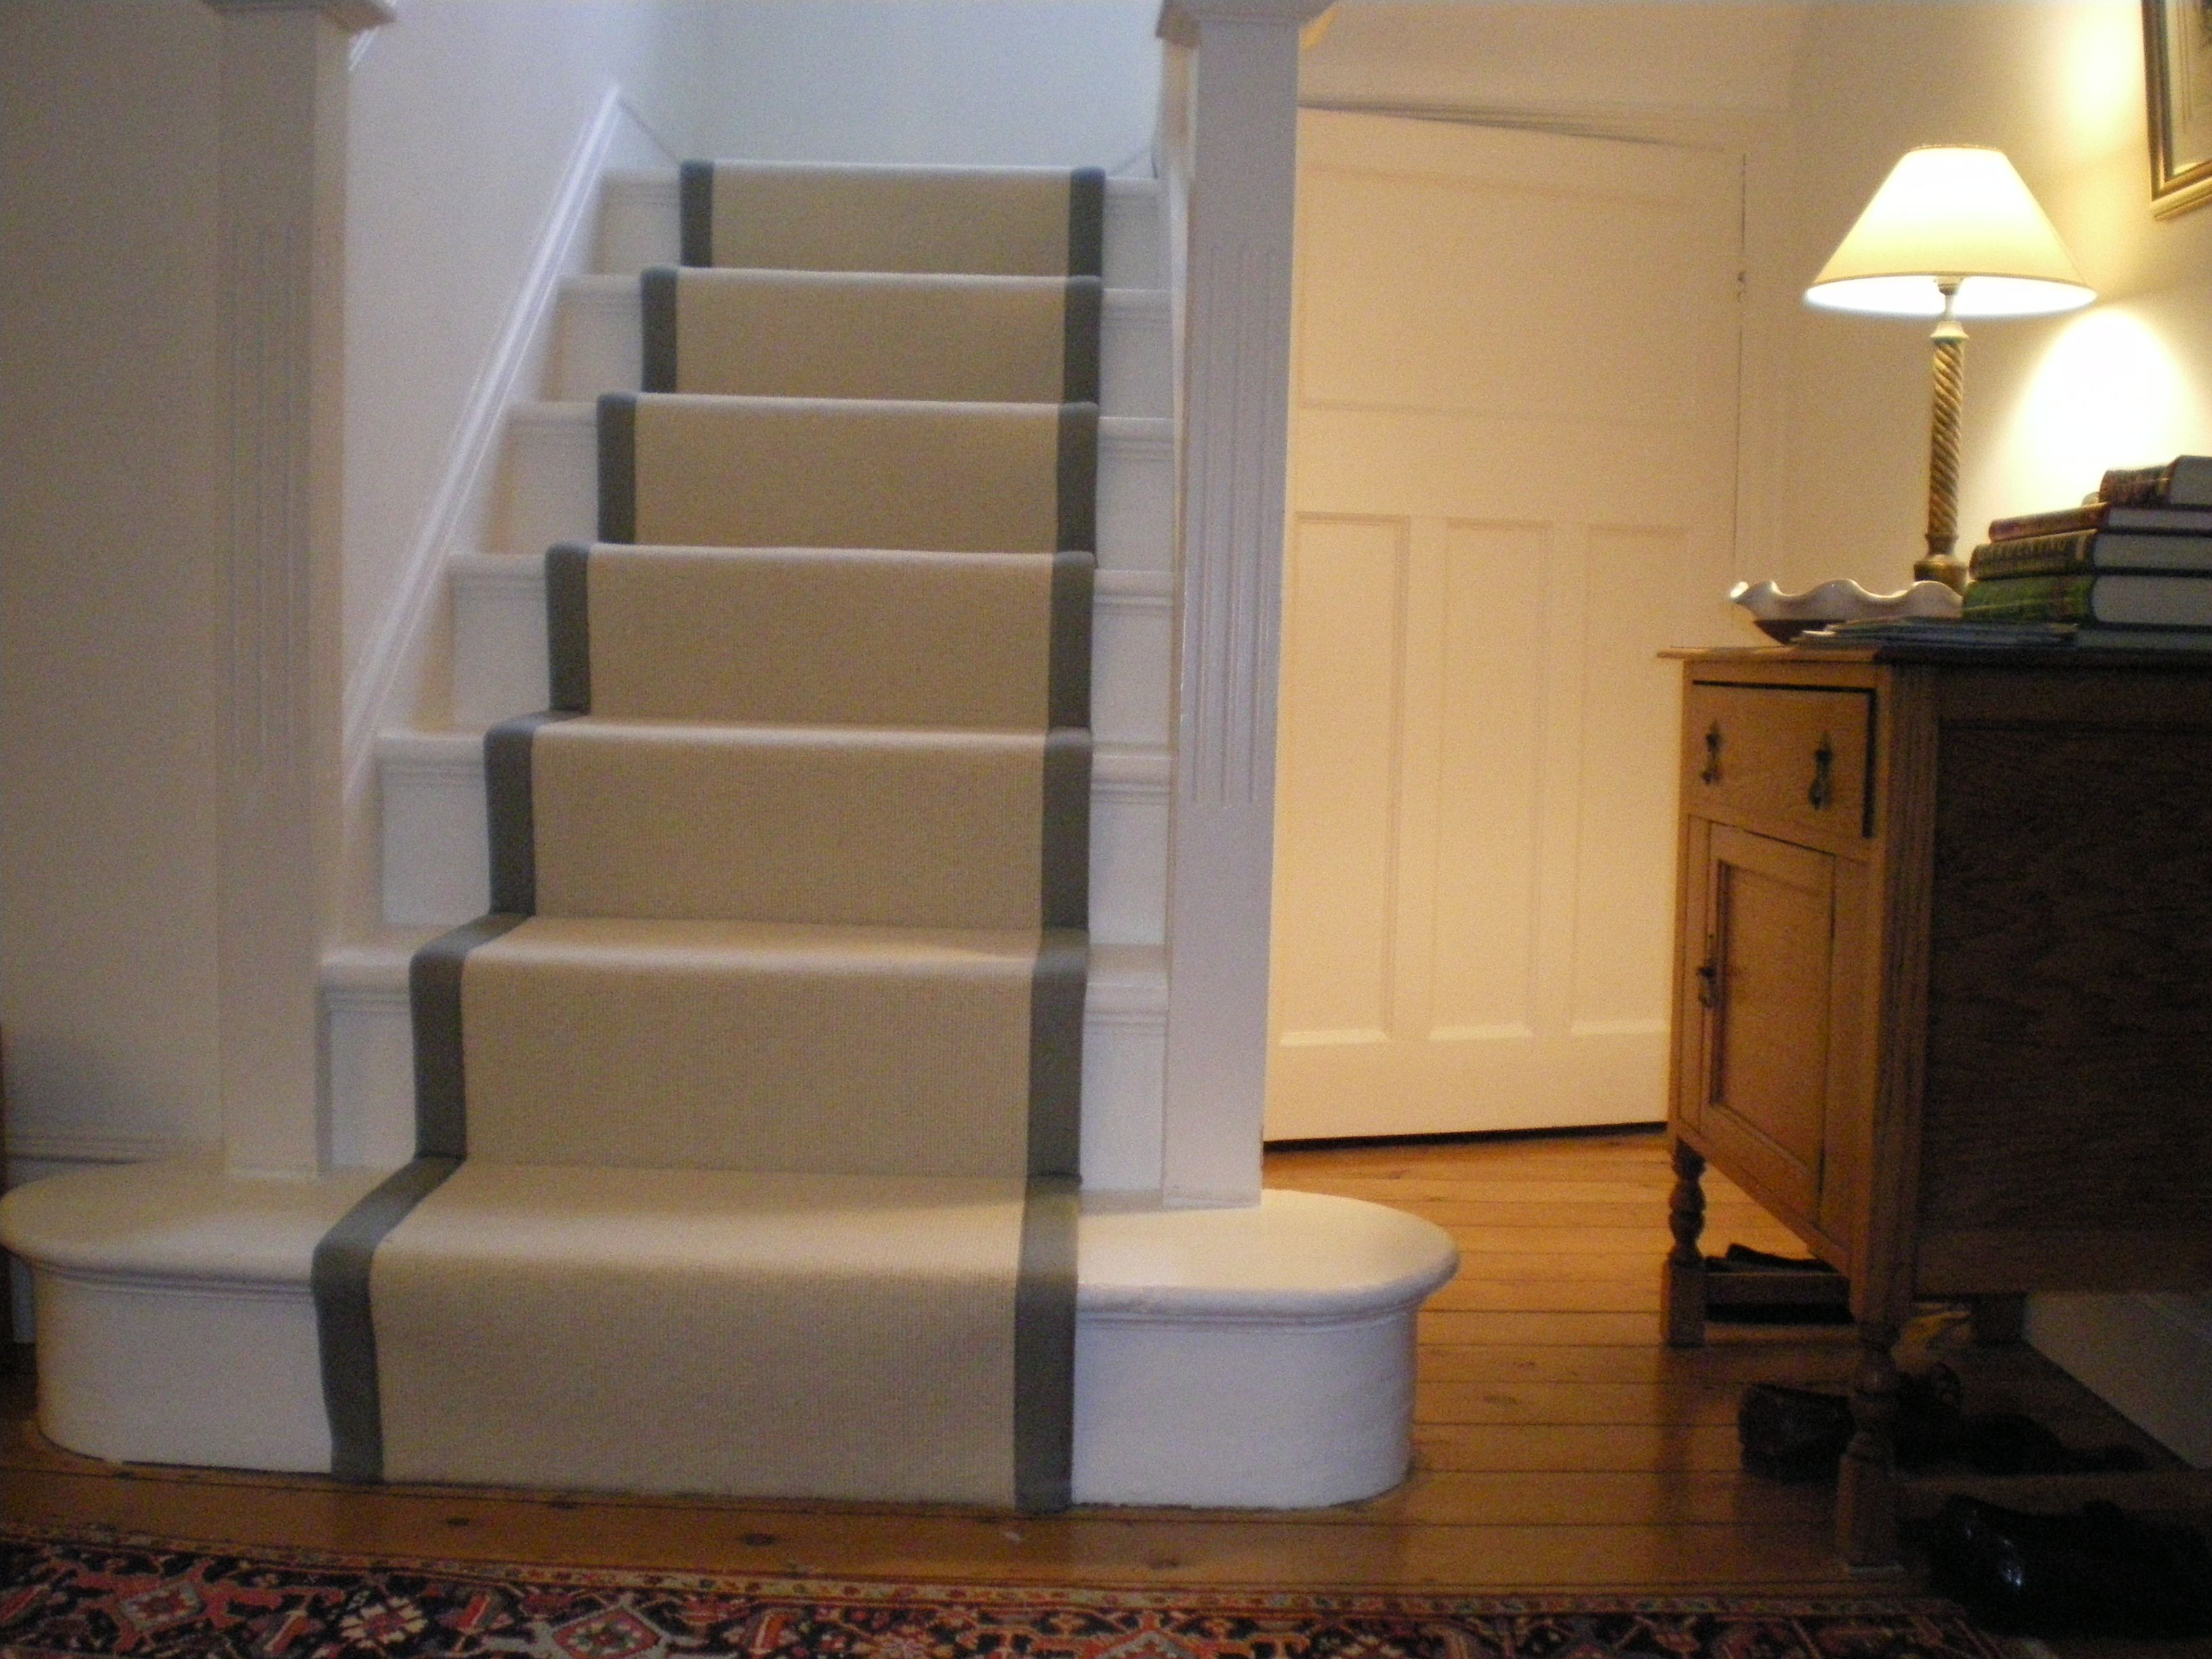 Best Wooden Stairs Design With Runner Bespoke Stair Runners 400 x 300